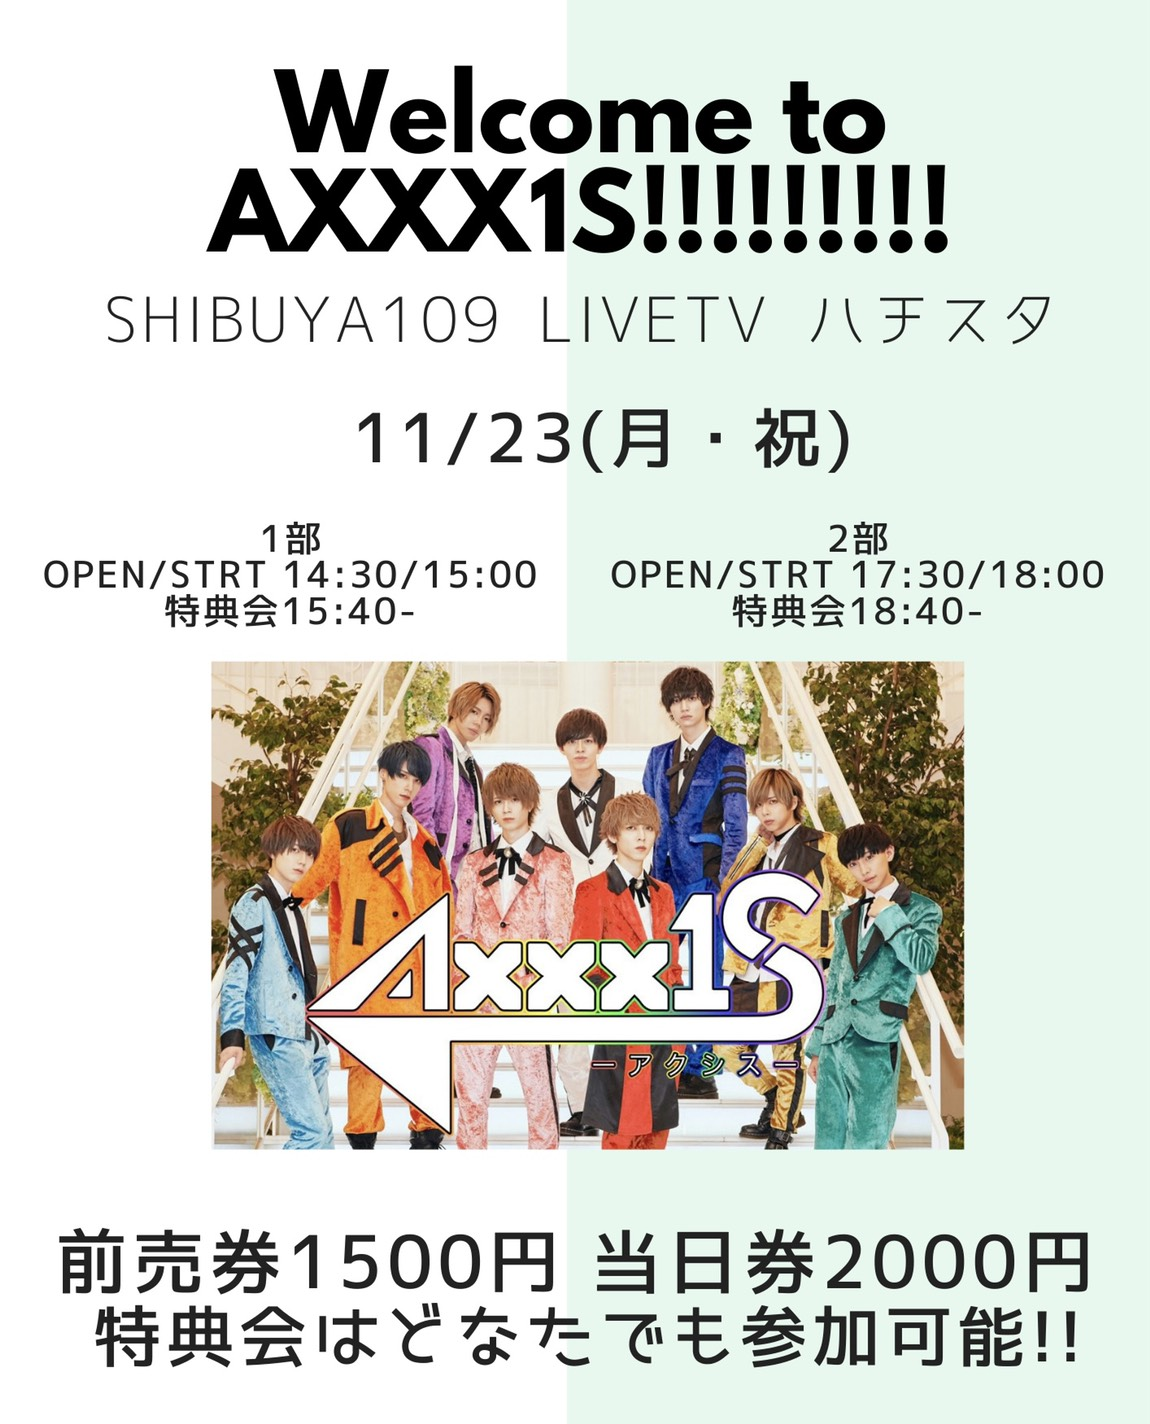 Welcome to AXXX1S in 109 ハチスタ 1部